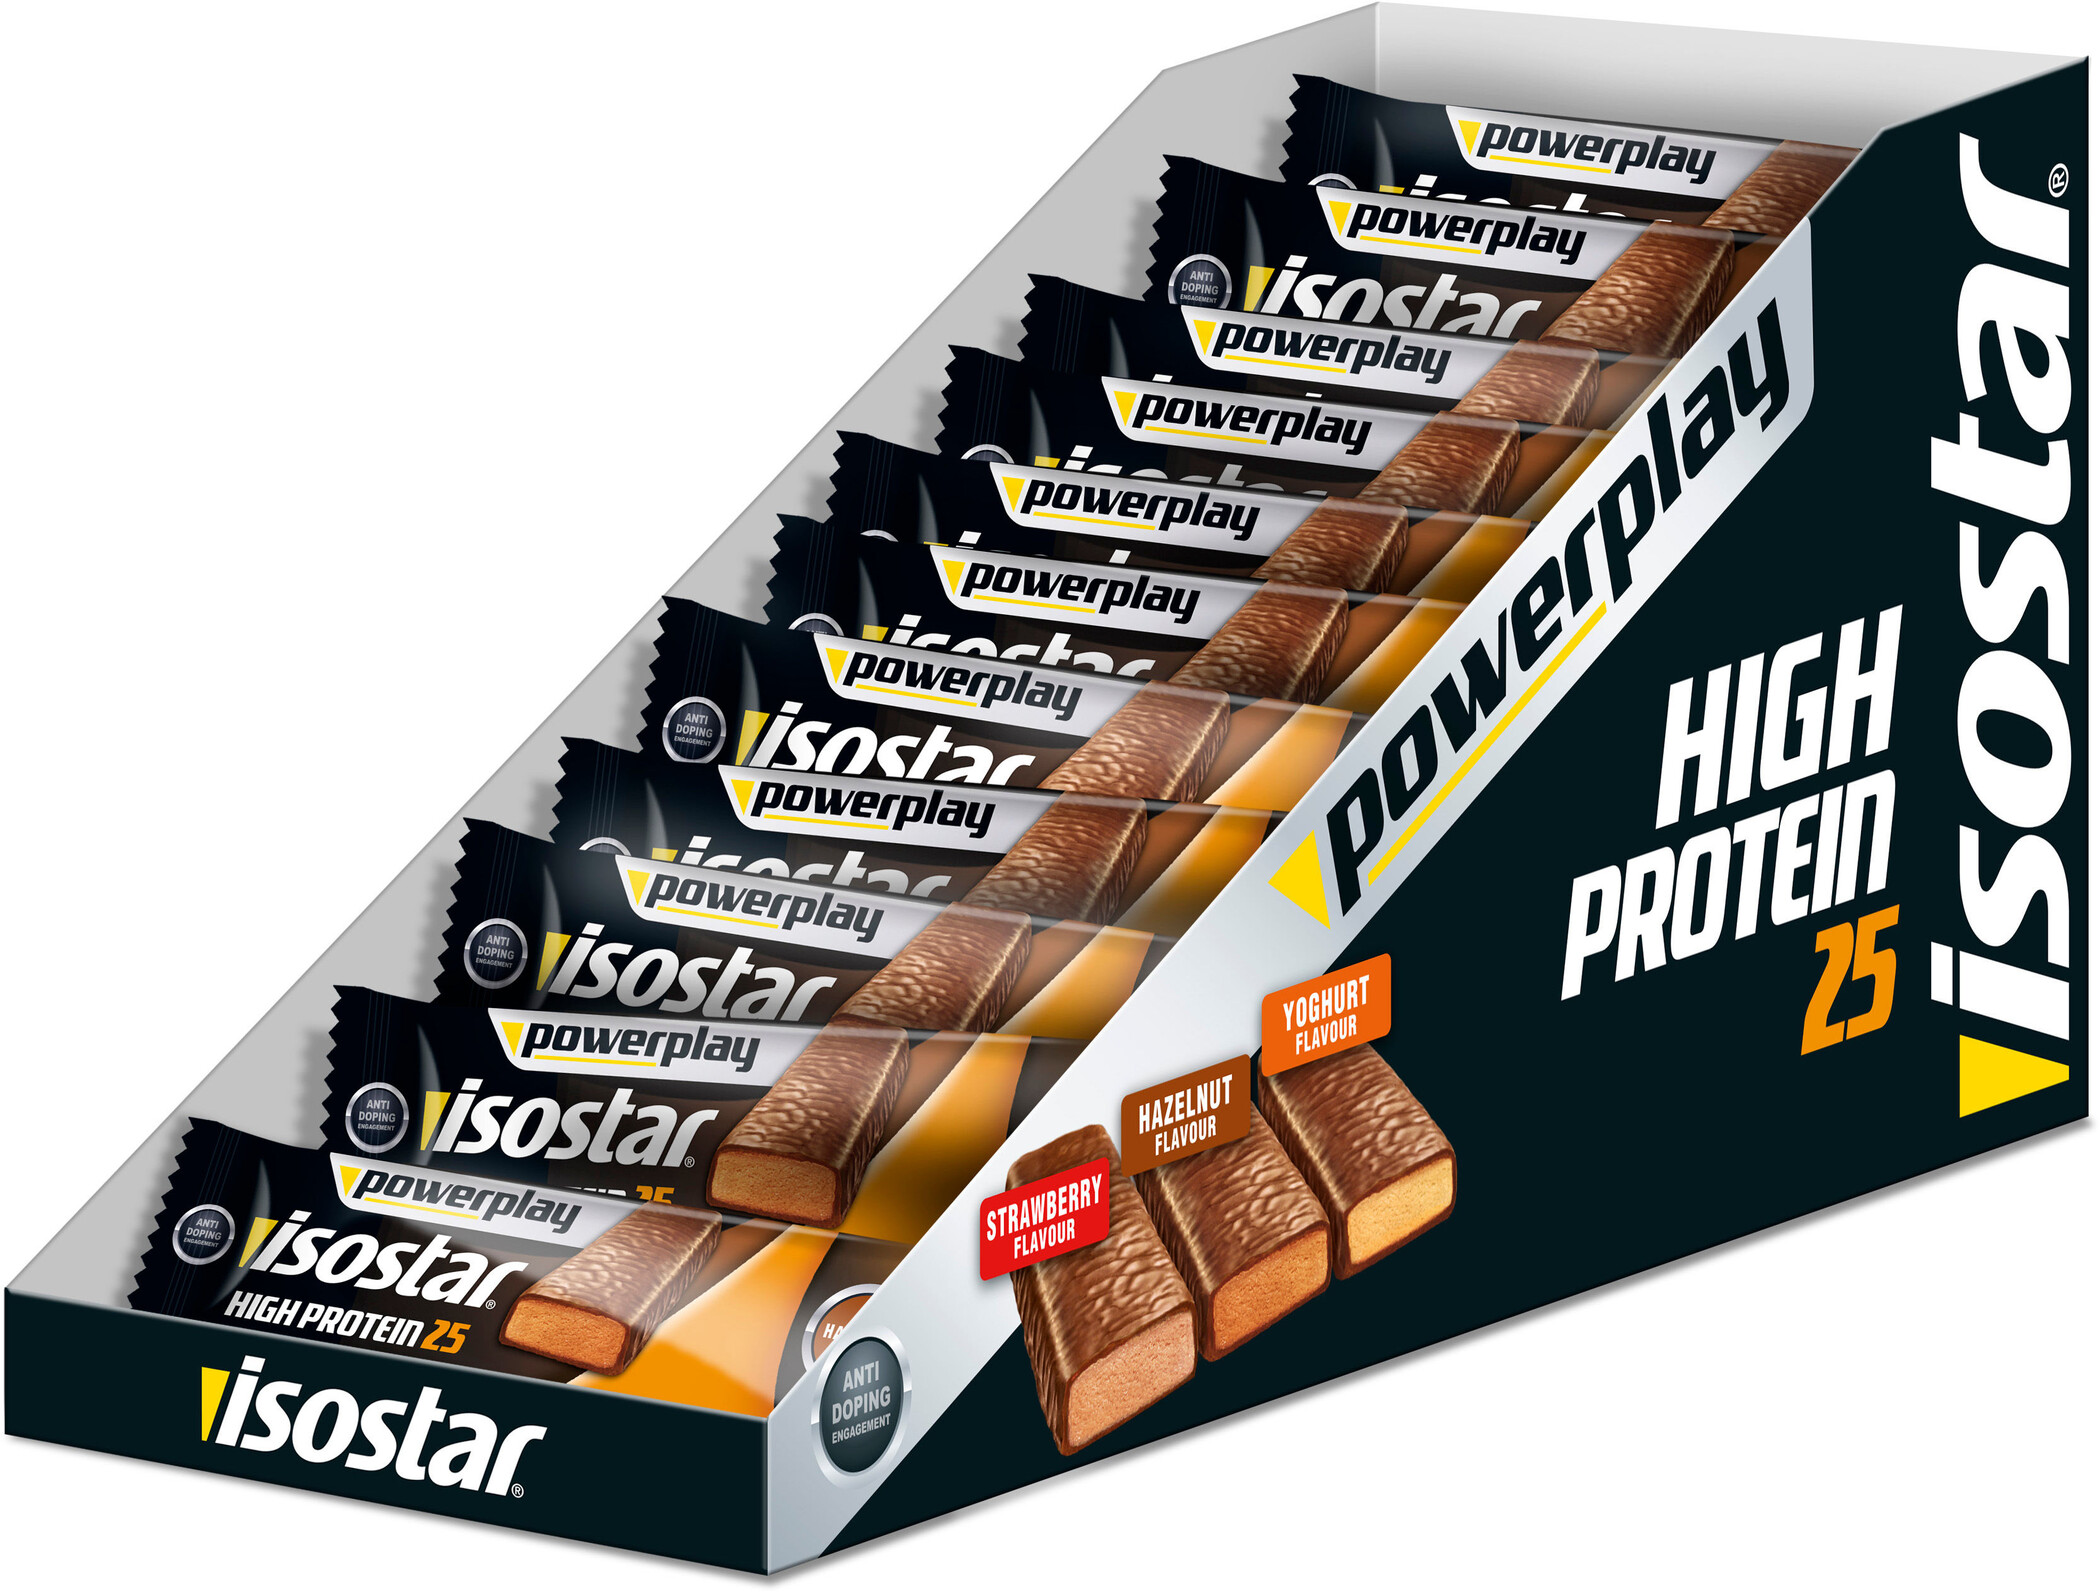 Isostar High Protein 25 Bar Box 30x35g, Hazelnut | Misc. Nutrition